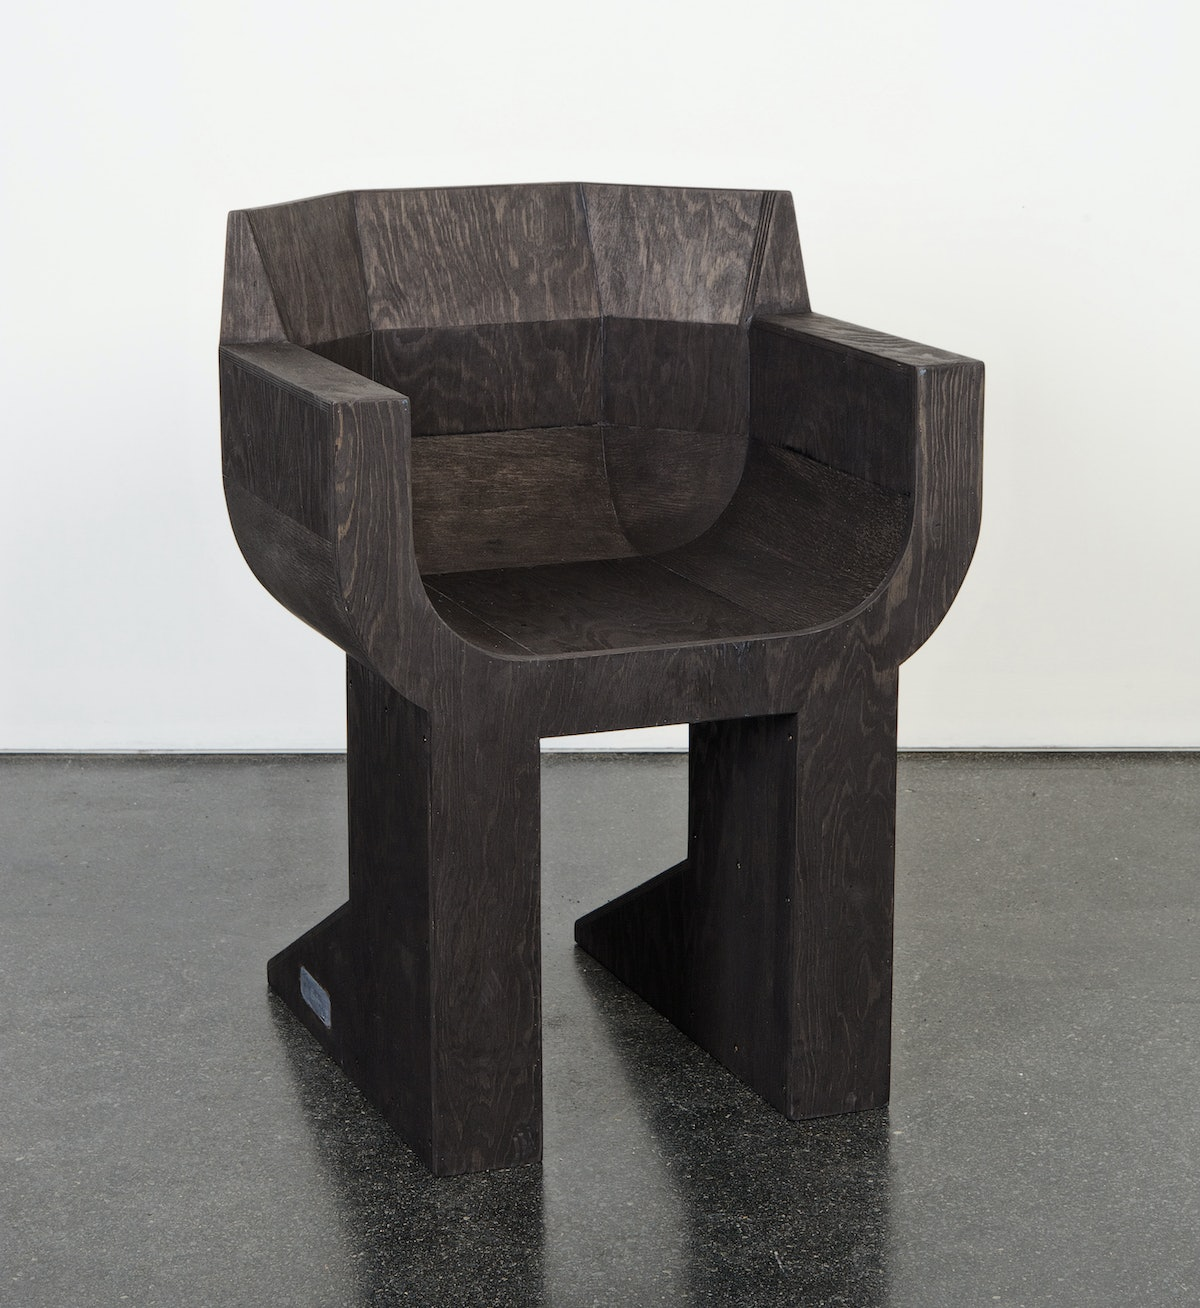 A chair designed by Michèle Lamy and Rick Owens